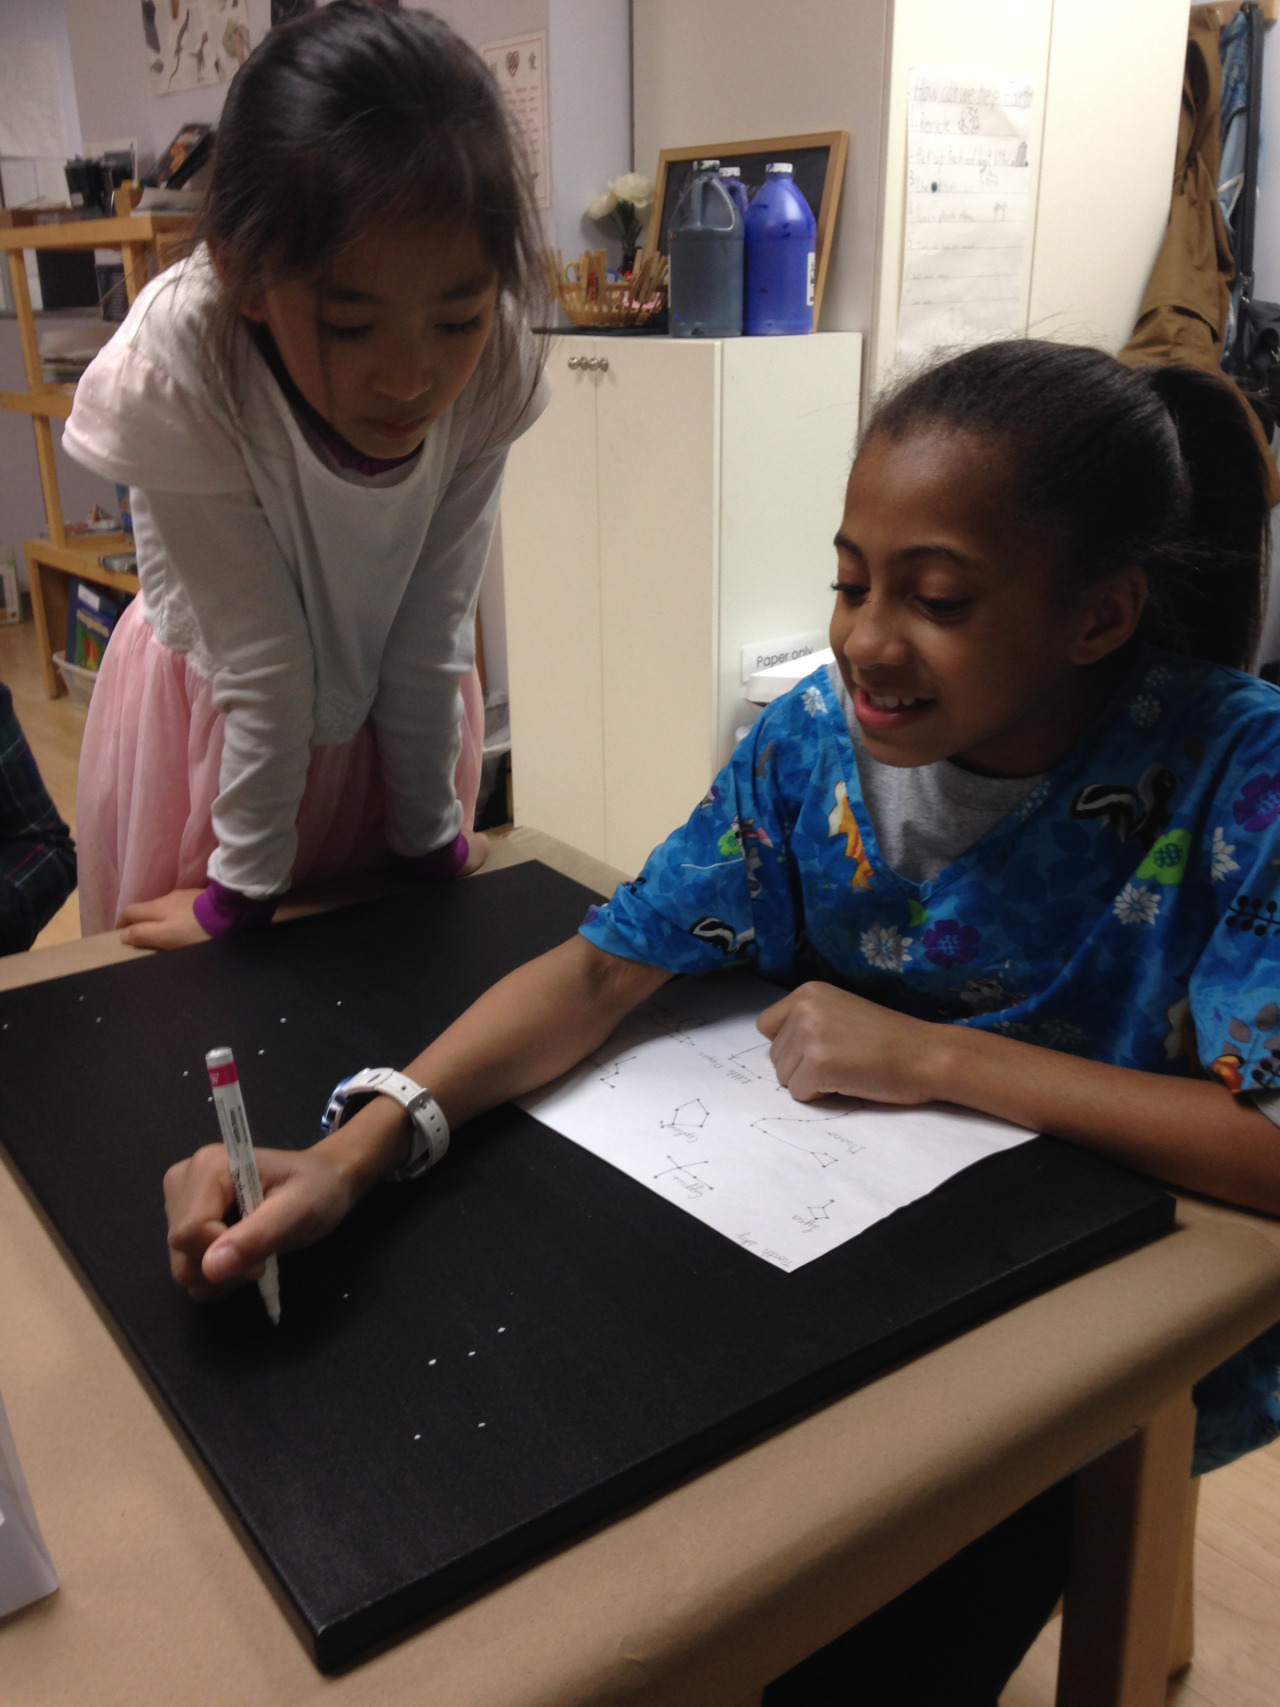 The Lower Elementary West students worked on their group project for the Waterfront School Foundation Gala.